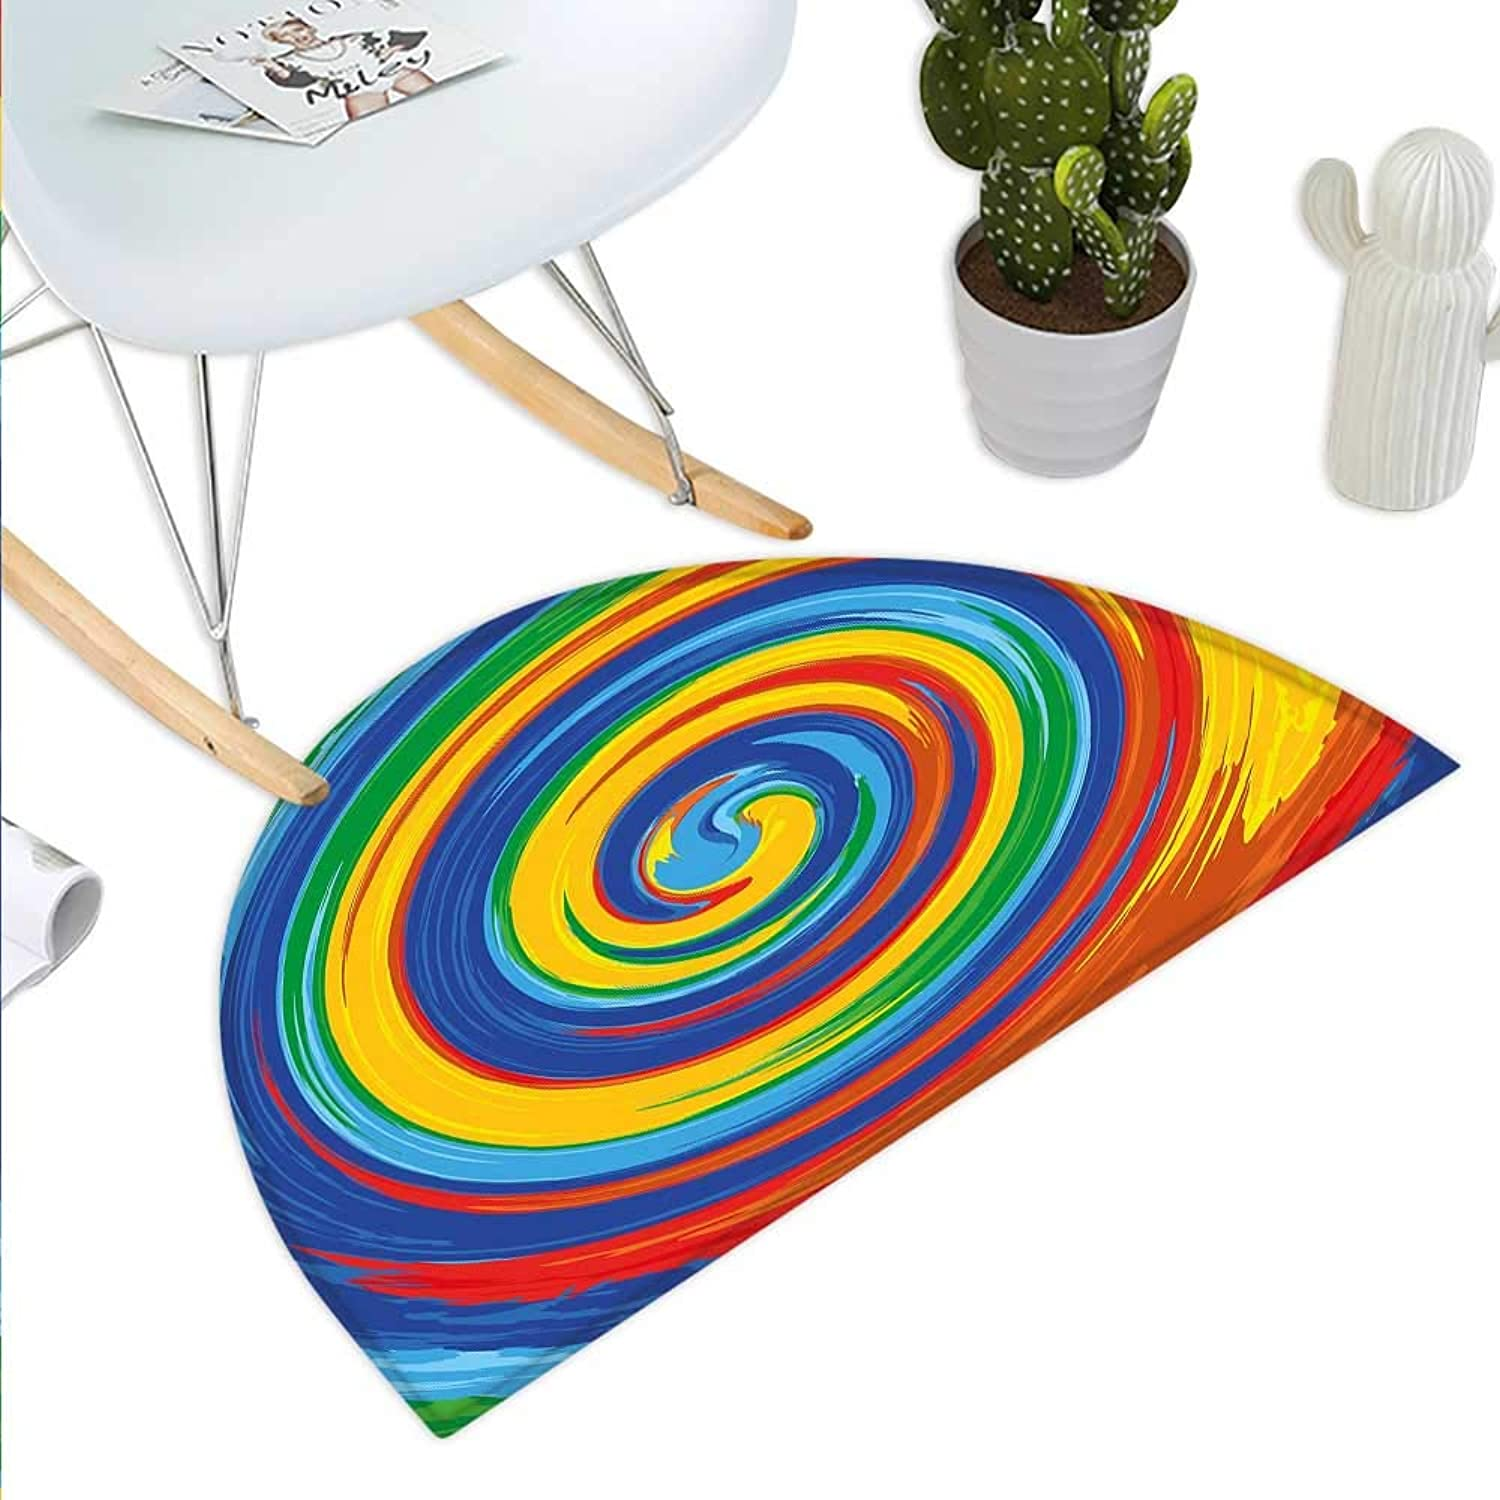 Rainbow Semicircle Doormat Vivid Swirls Whirlpool Rainbow colord Hand Drawn Artwork Optical Illusions Grunge Halfmoon doormats H 31.5  xD 47.2  Multicolor